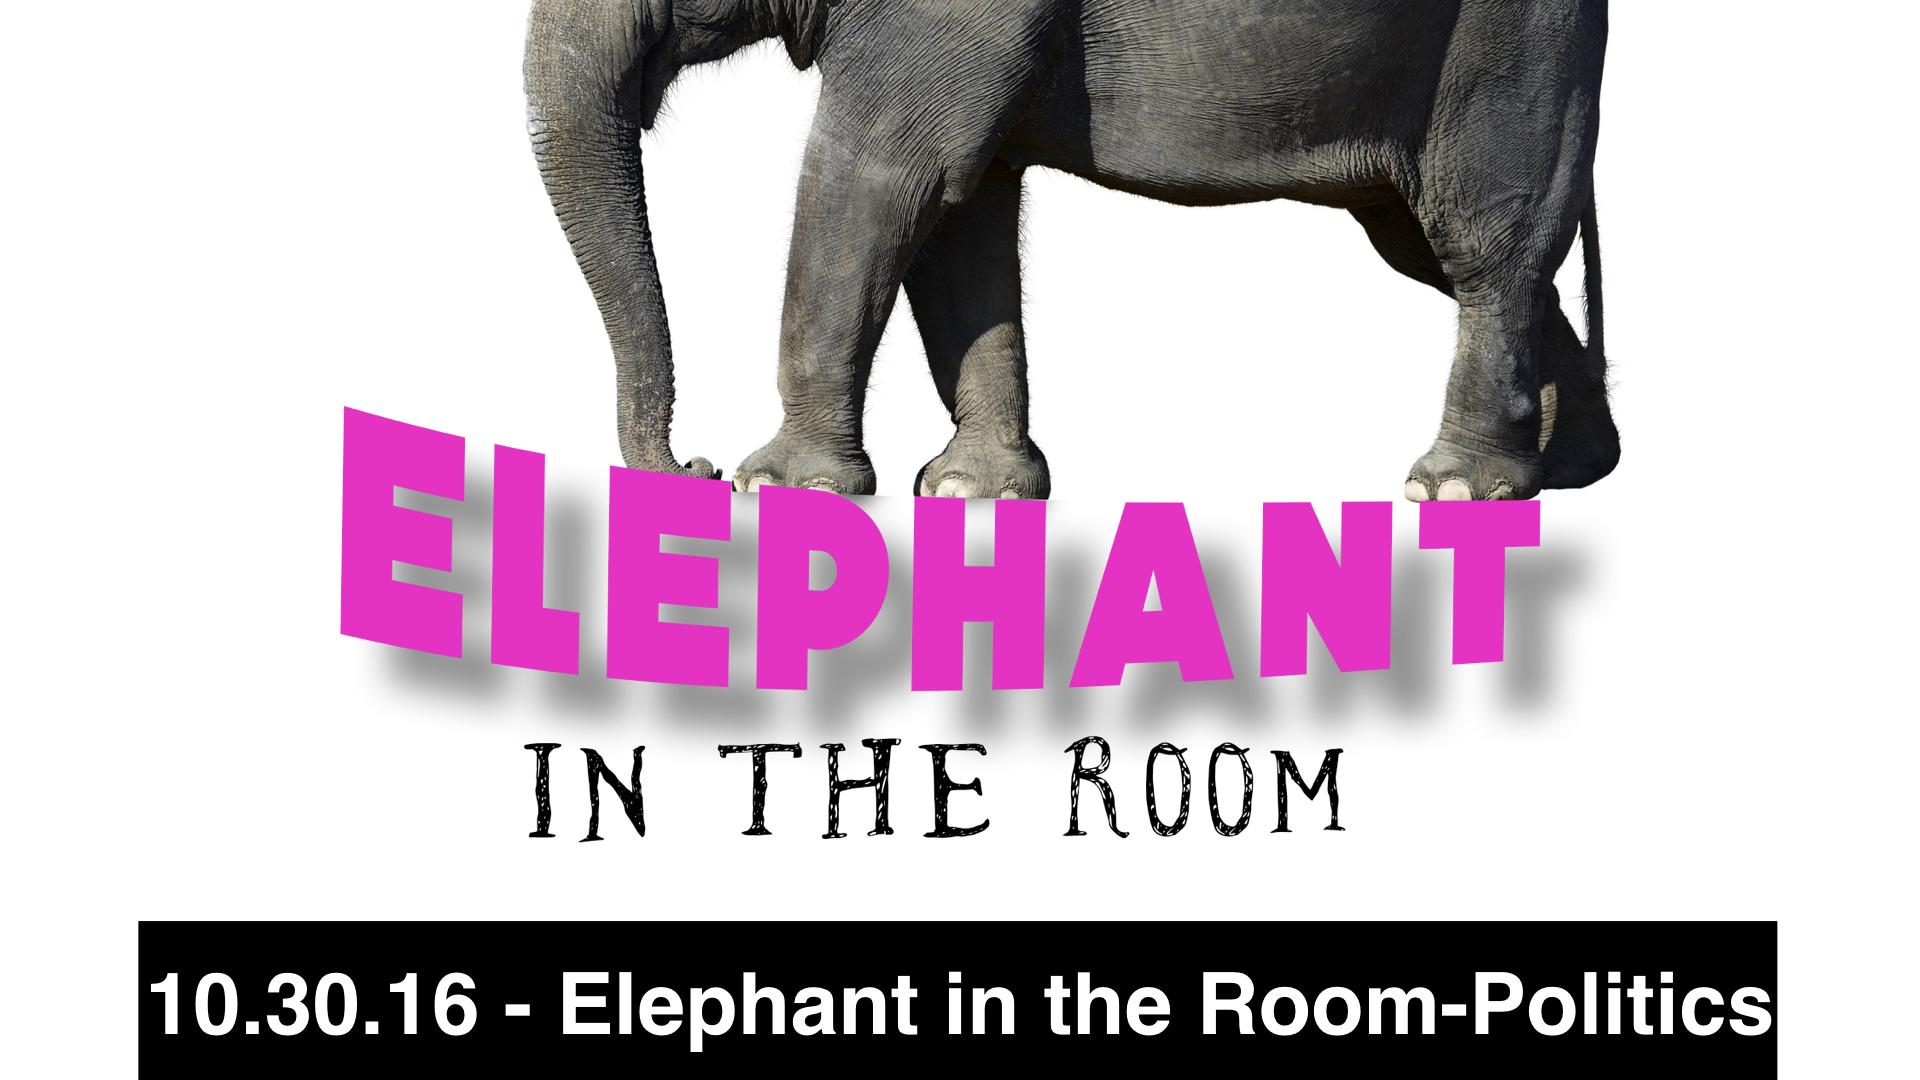 10.30.16 - Elephant in the Room - Politics